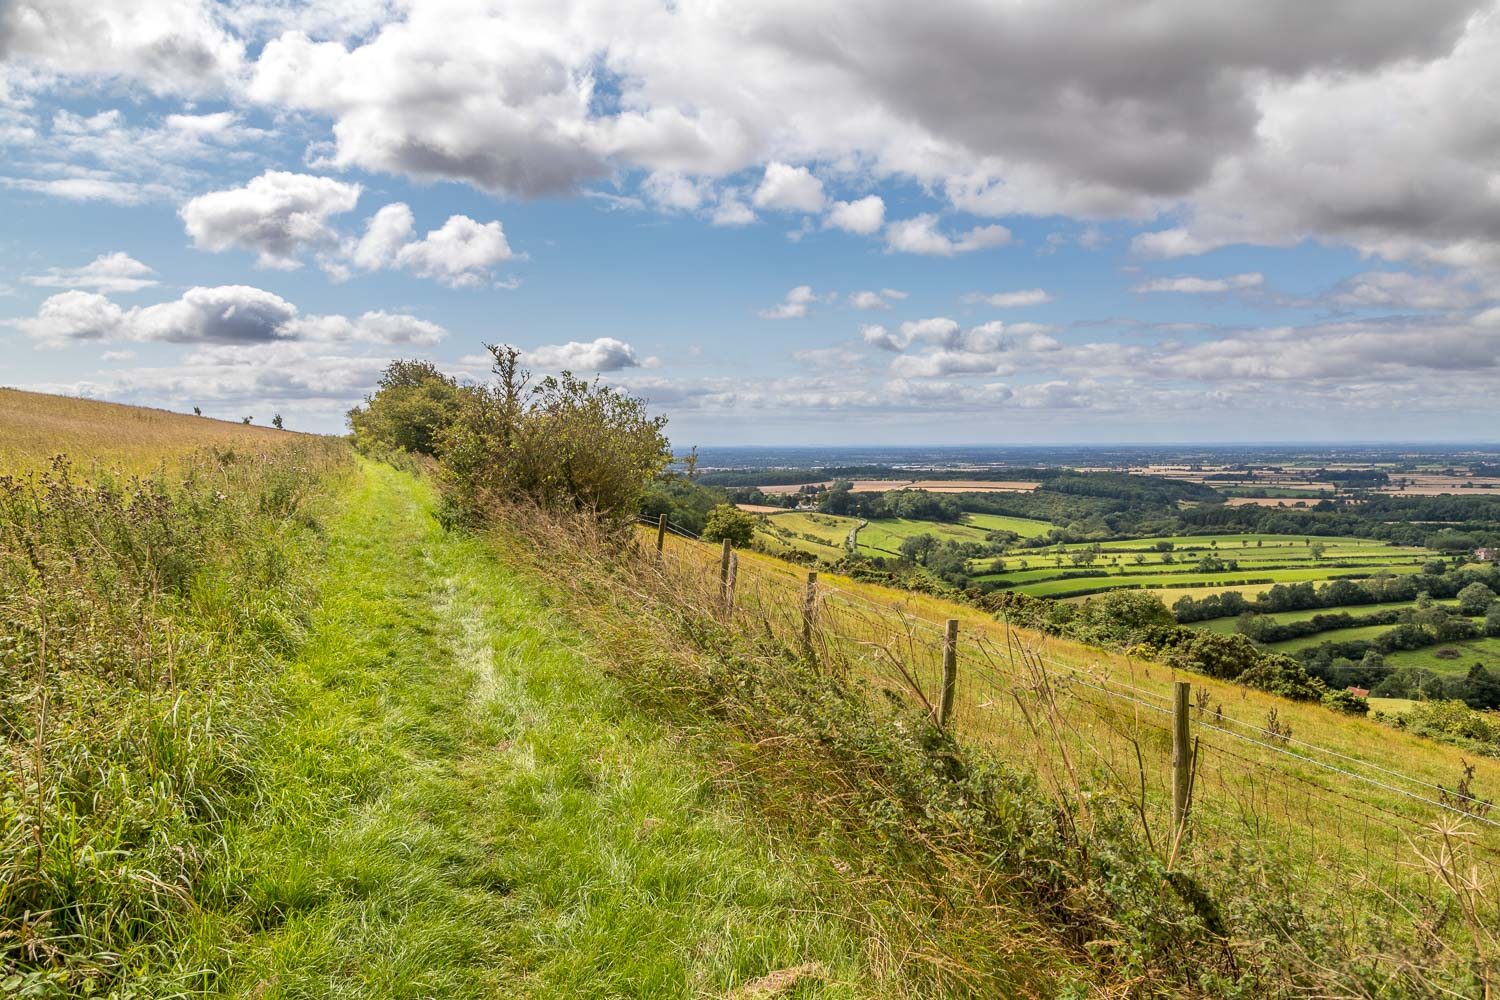 Chalkland Way, Vale of York